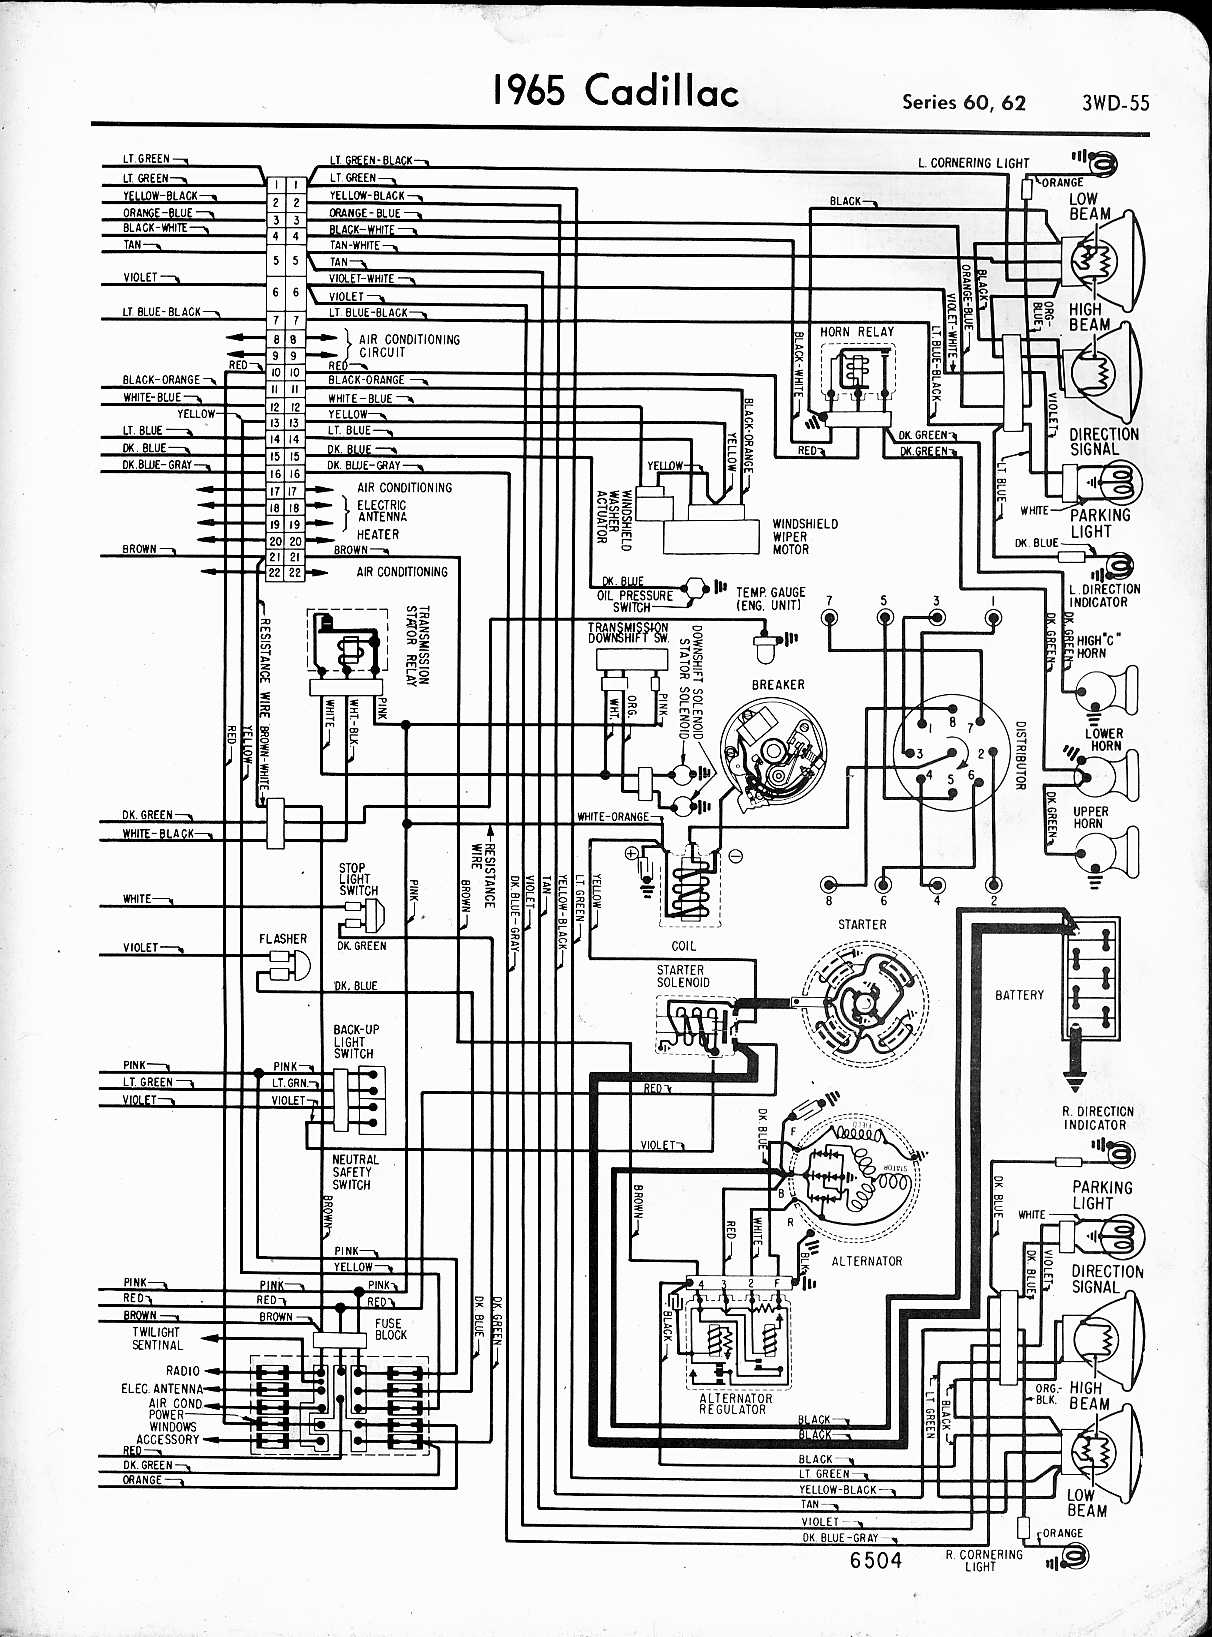 [DIAGRAM_09CH]  Cadillac Wiring Diagrams: 1957-1965 | Cadillac Electrical Wiring Diagrams |  | The Old Car Manual Project